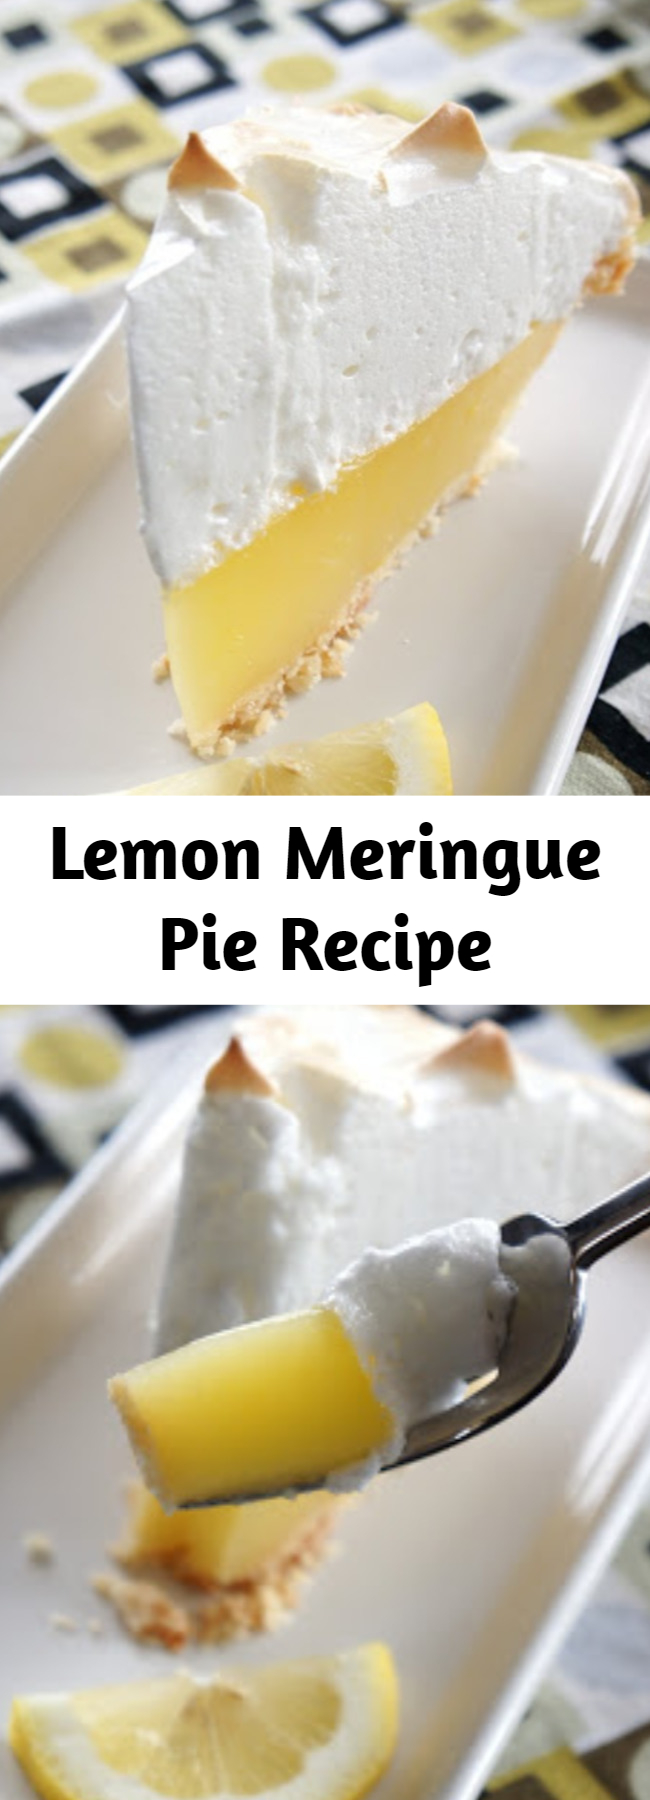 Lemon Meringue Pie Recipe - The best, no fail, lemon meringue pie. The meringue stays fluffy and does not pull away from the crust. The filling does not get runny, it stays perfectly together when you slice the pie.